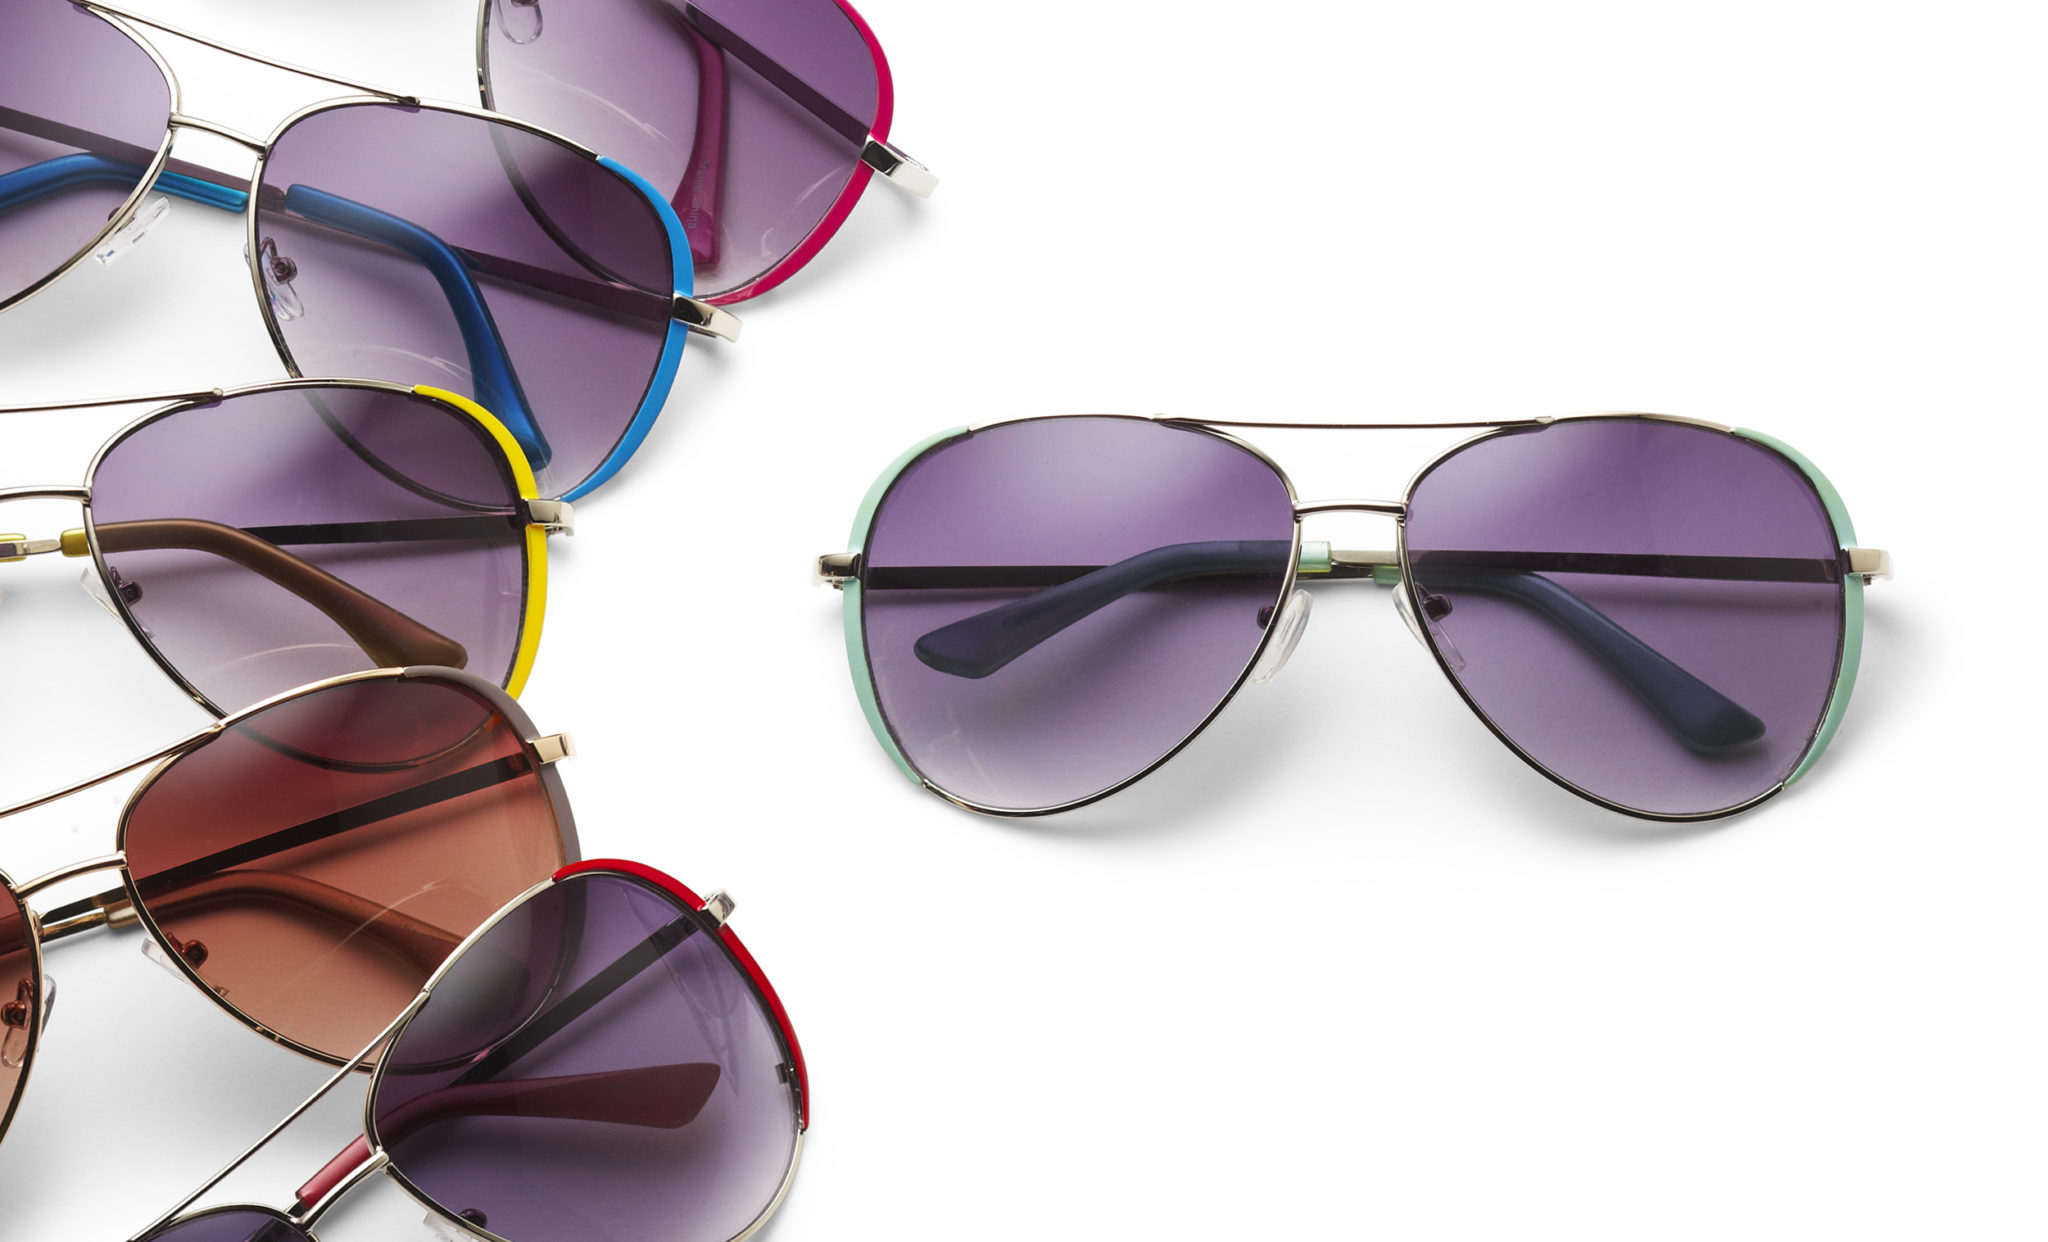 e-commerce group photograph of sunglasses with colorful frames.  five are fanned and one more by itself